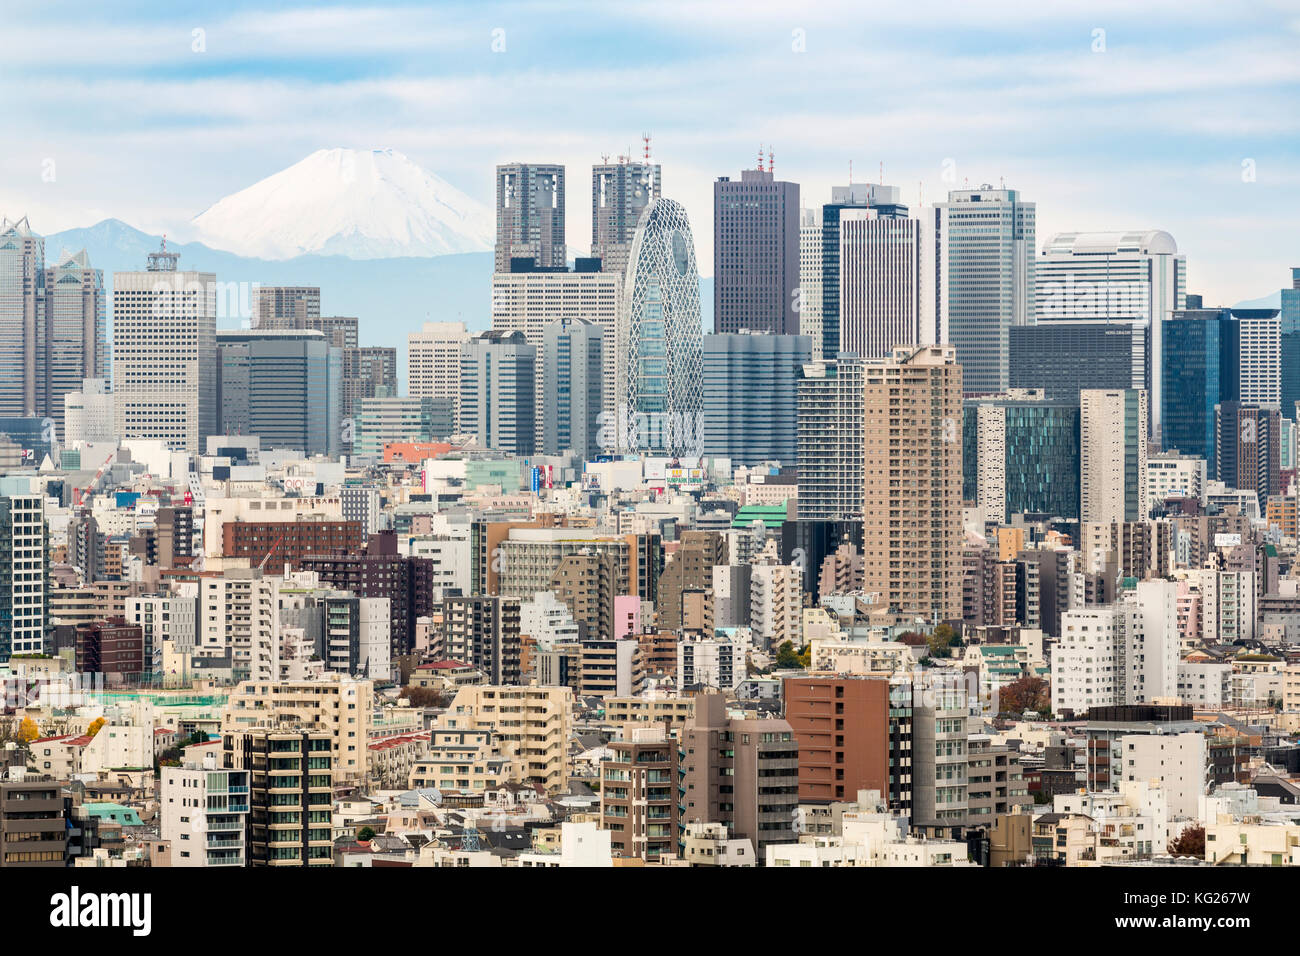 Mount Fuji and the Shinjuku district skyscraper skyline, Tokyo, Japan, Asia - Stock Image